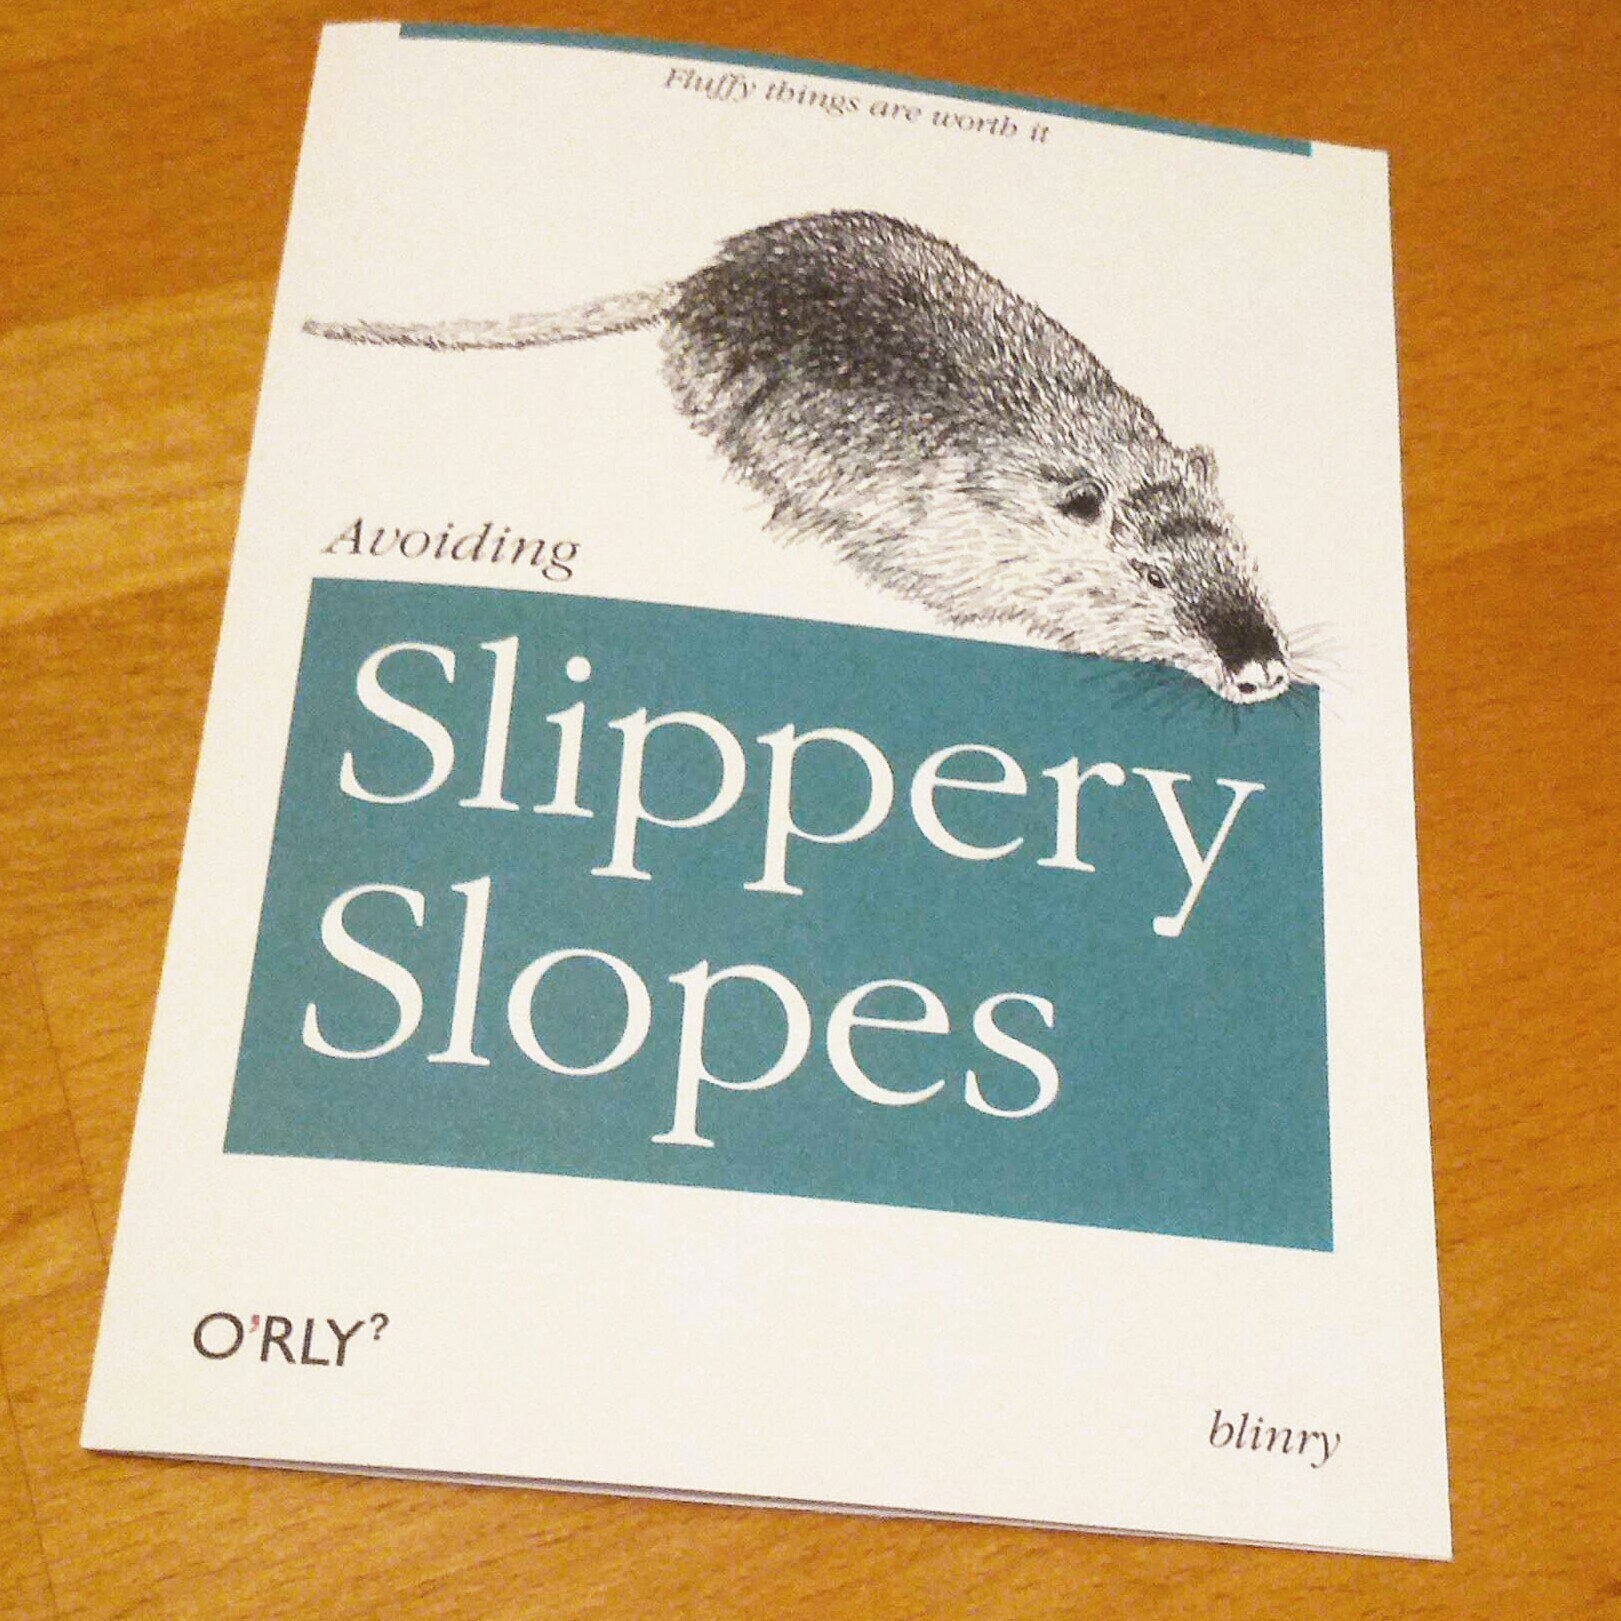 Avoiding Slippery Slopes as an O'Reilly book